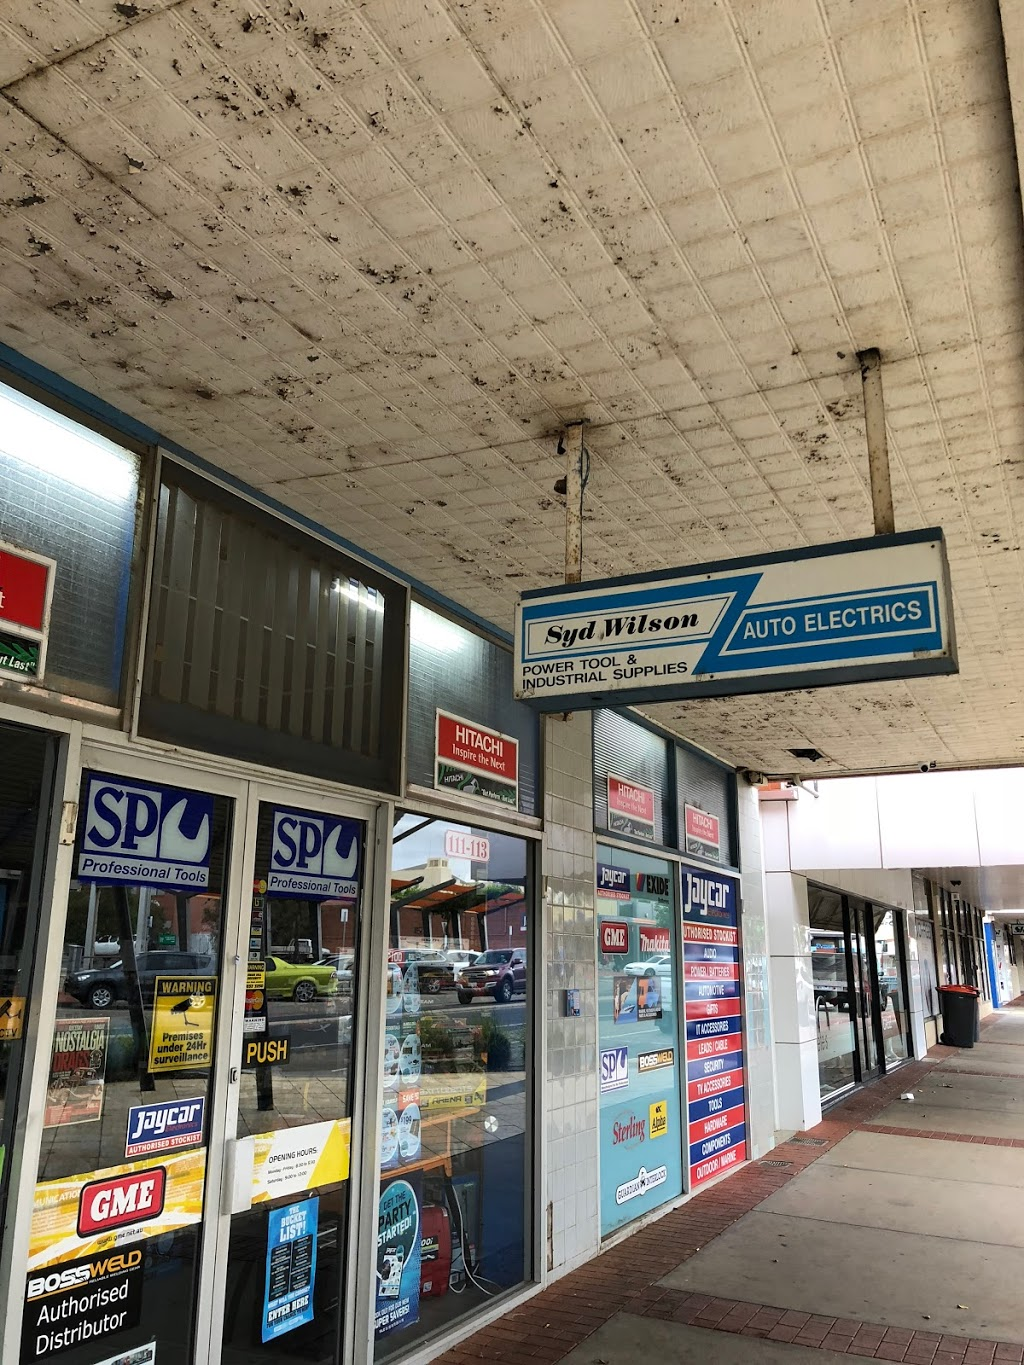 Syd Wilson Auto Electrics   store   111-113 Campbell St, Swan Hill VIC 3585, Australia   0350322005 OR +61 3 5032 2005